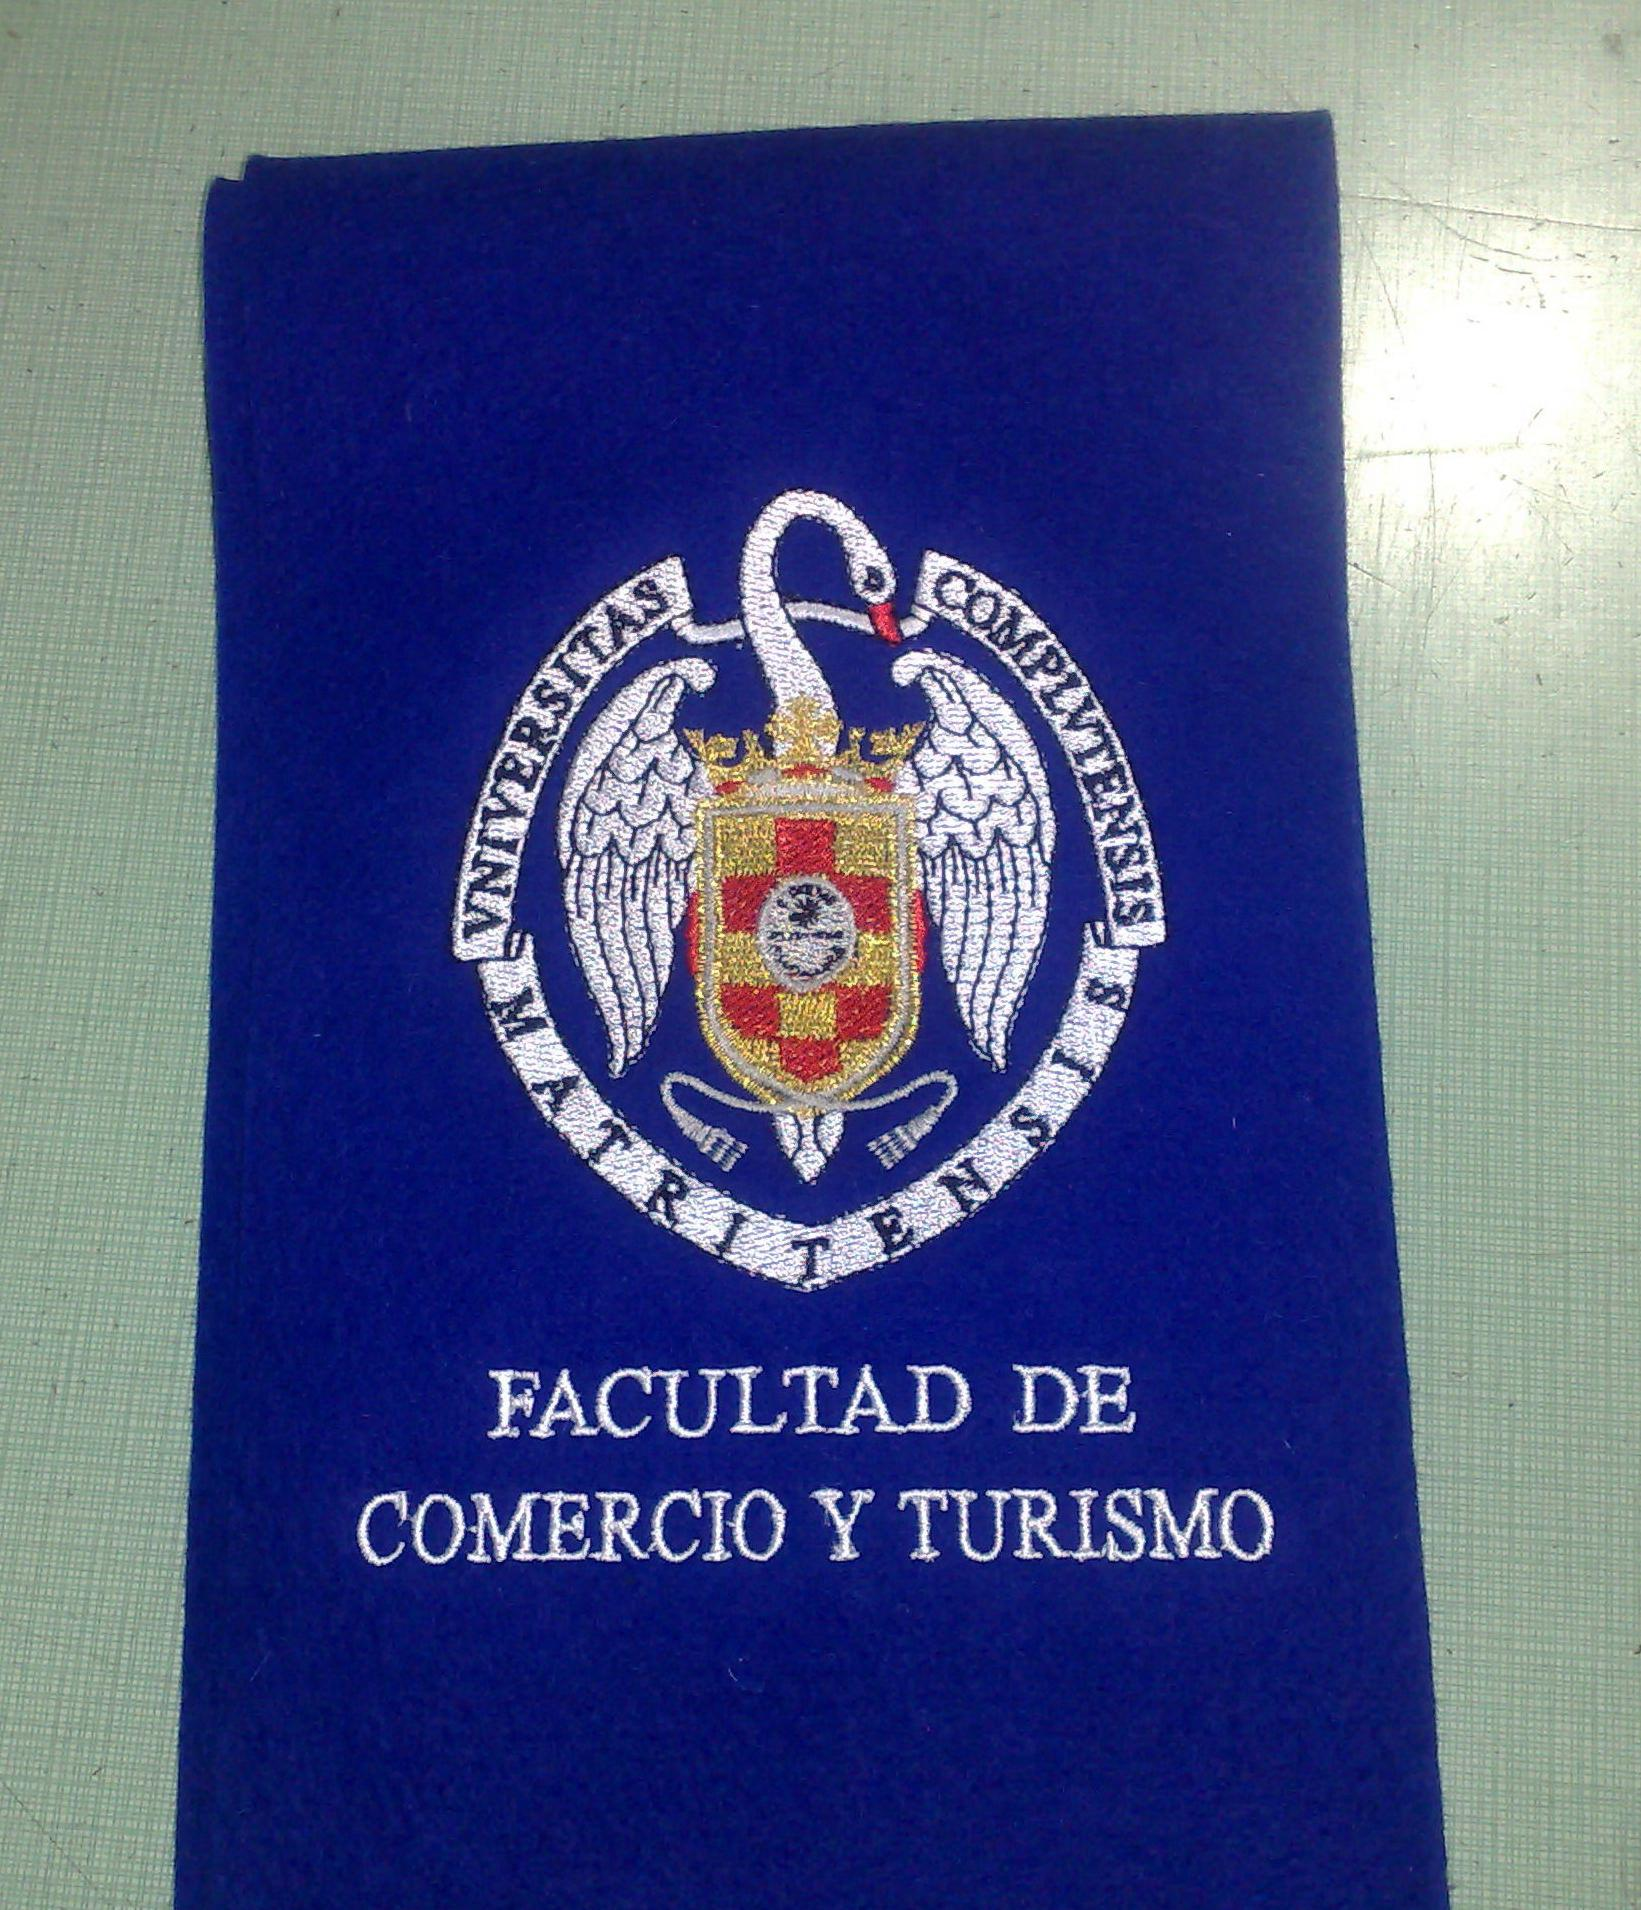 Becas graduaci n cat logo de bordados of bordados - Facultad de comercio y turismo ucm ...